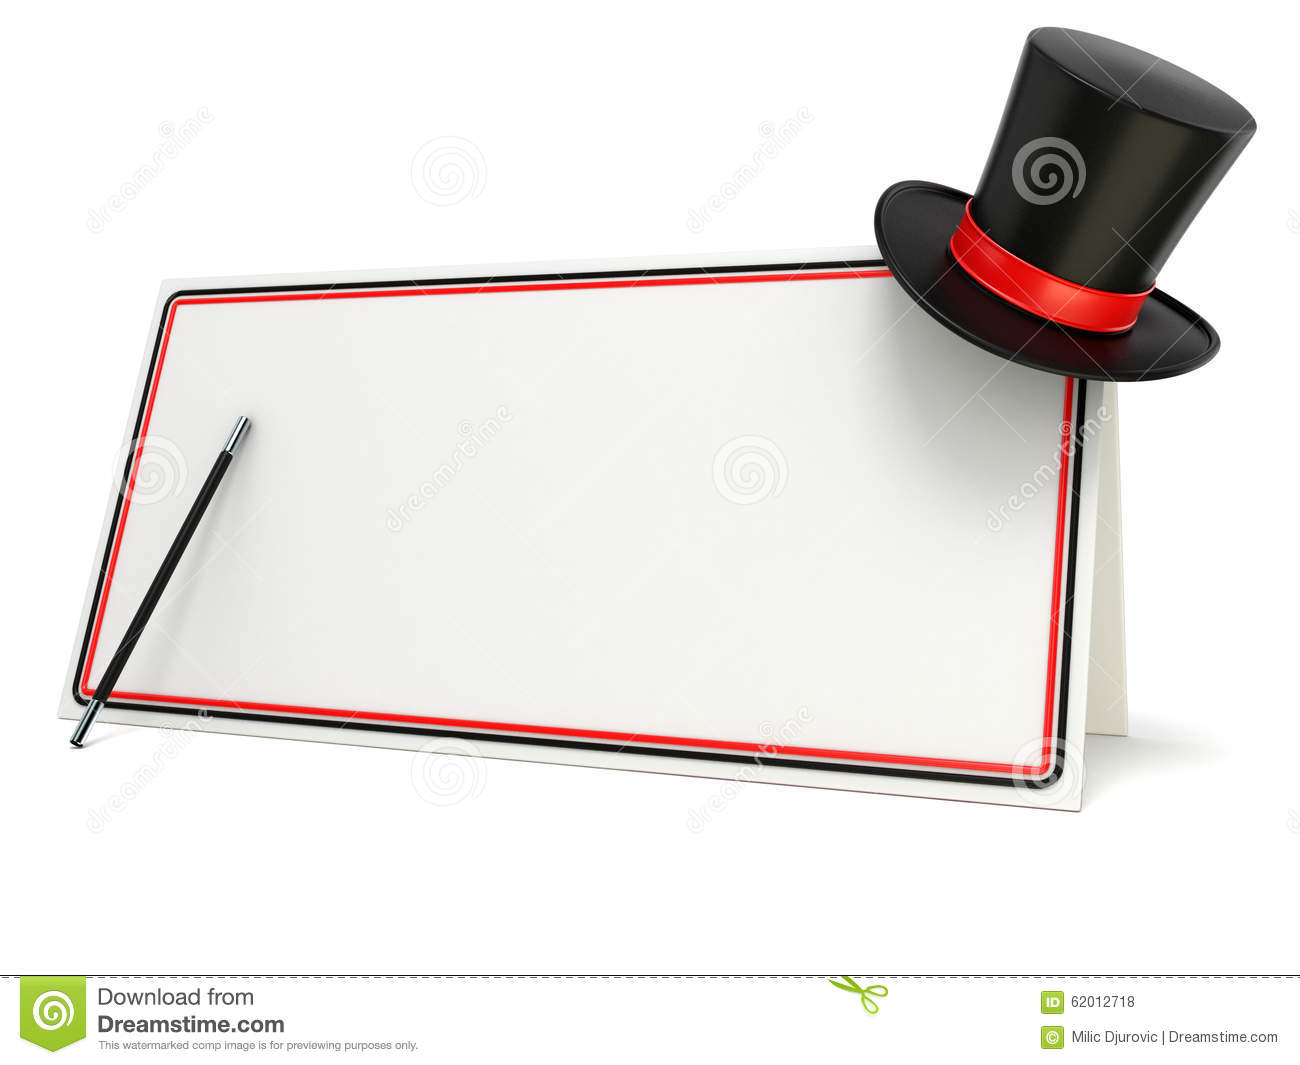 Magic wand and hat on blank board with black and red border. 3D render